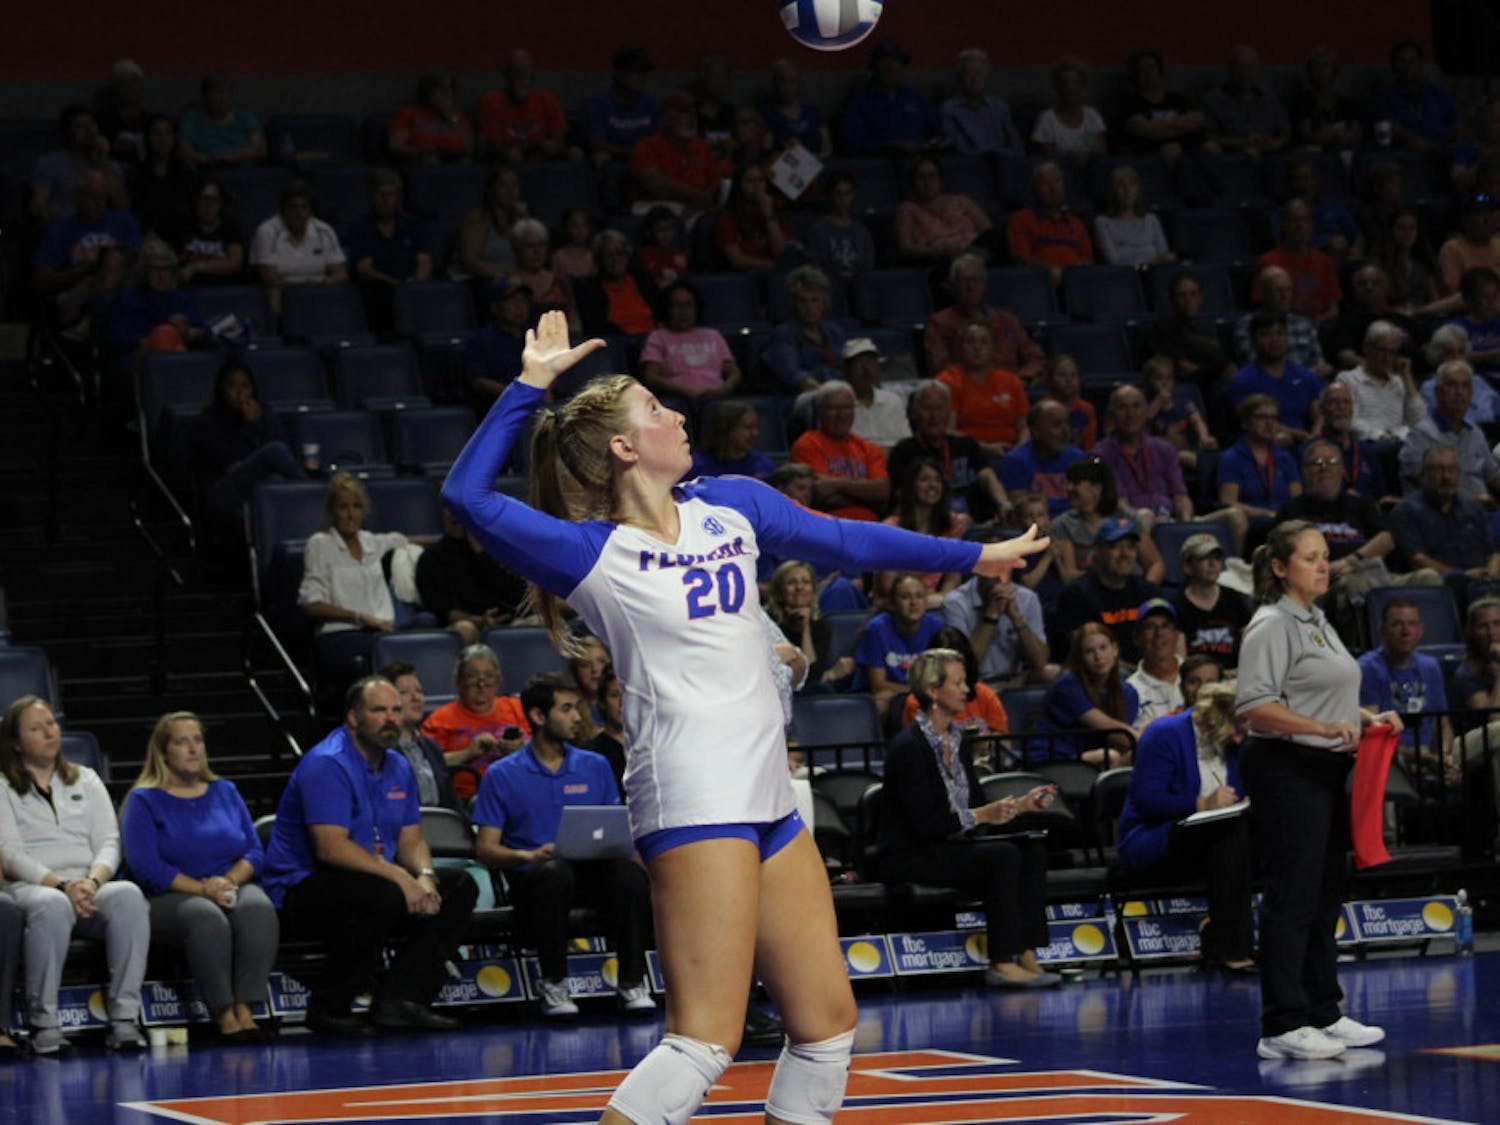 Freshman Thayer Hall ended the win over Georgia with 11 kills and hit a shade under .180 for the match.